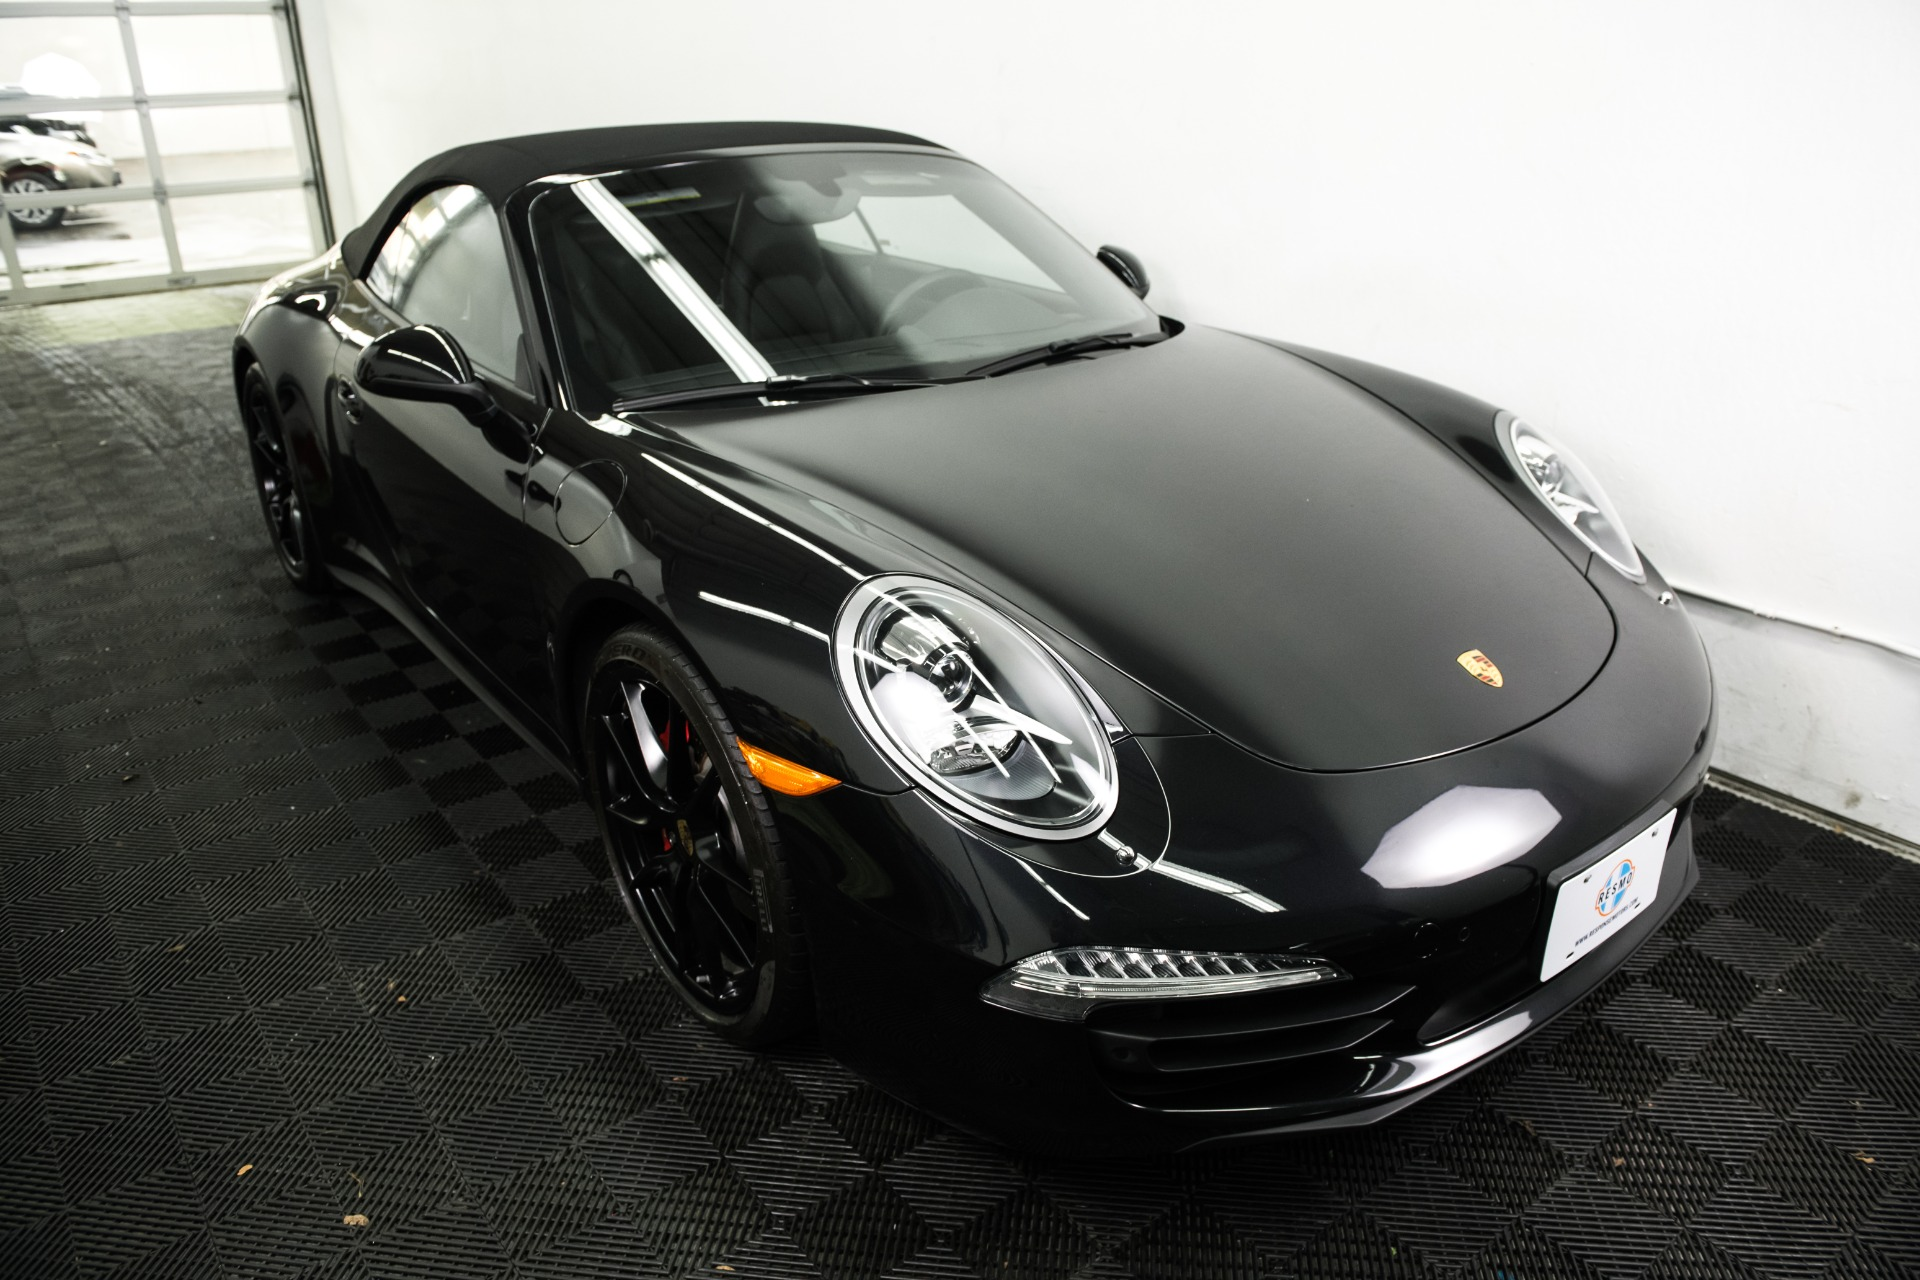 Used 2014 Porsche 911 Carrera 4S Used 2014 Porsche 911 Carrera 4S for sale Sold at Response Motors in Mountain View CA 4